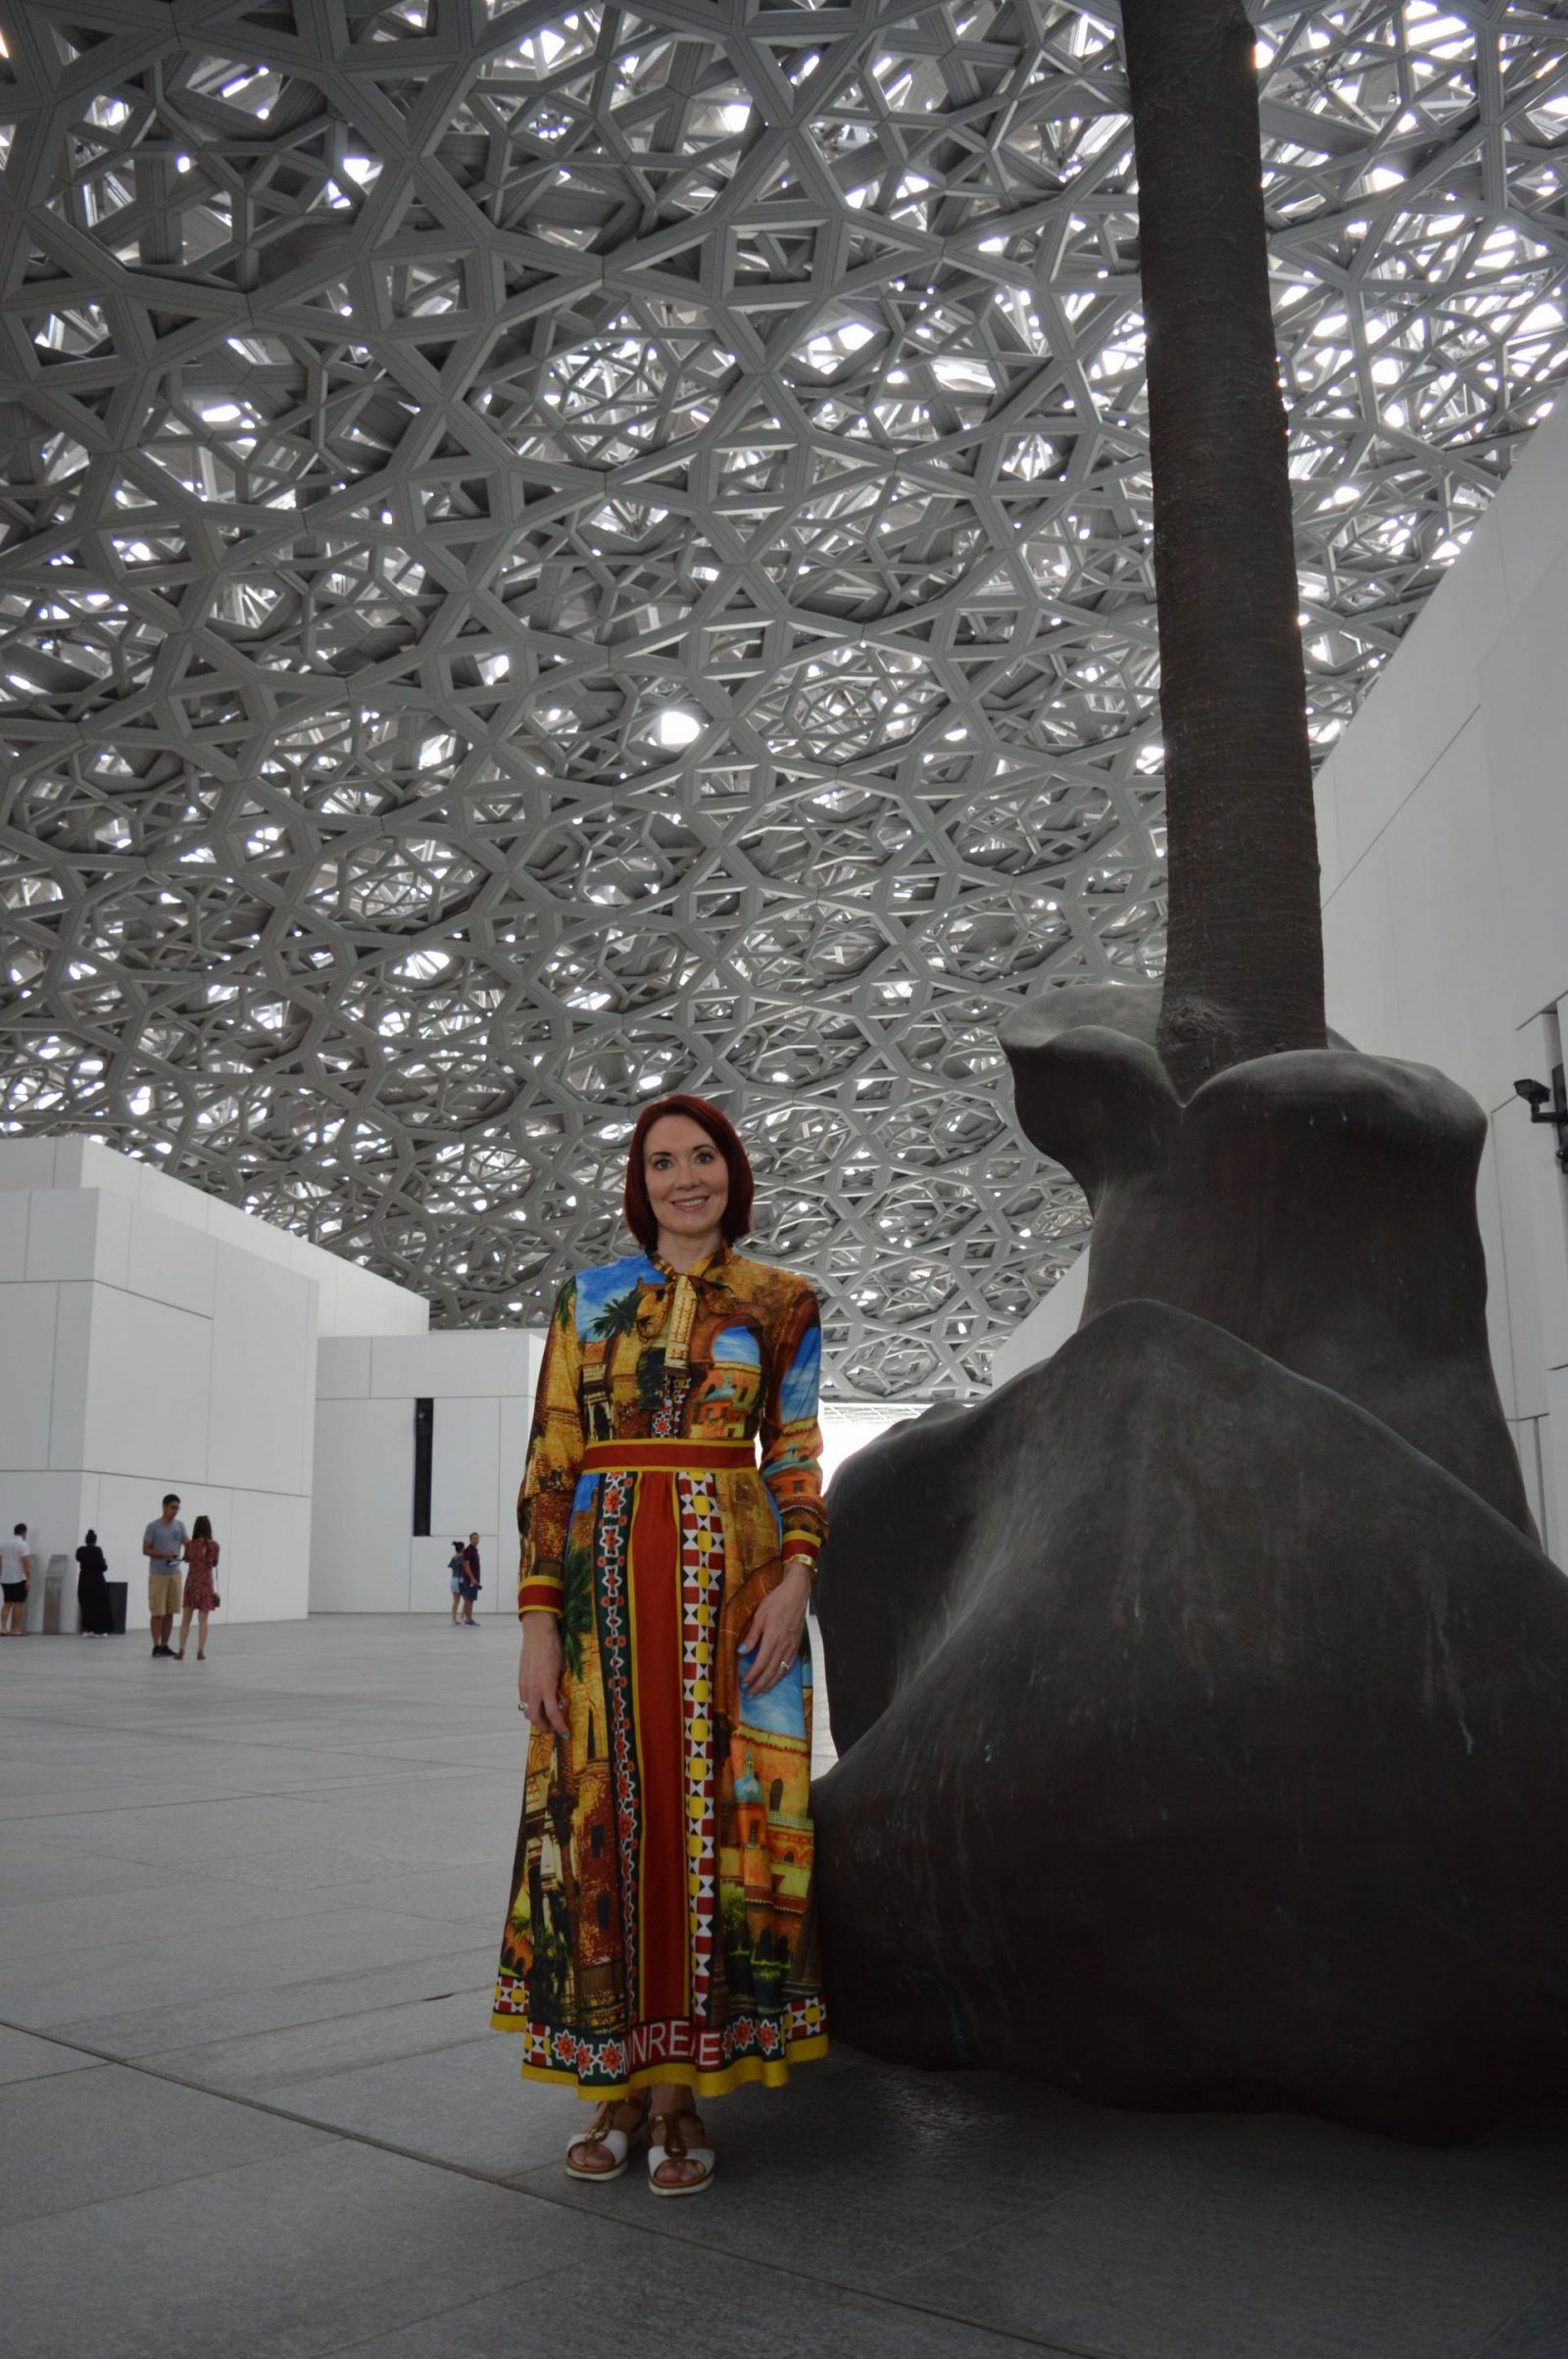 Visiting the Louvre Abu Dhabi and Sheikh Zayed Grand Mosque, Louvre Abu Dhabi dome roof